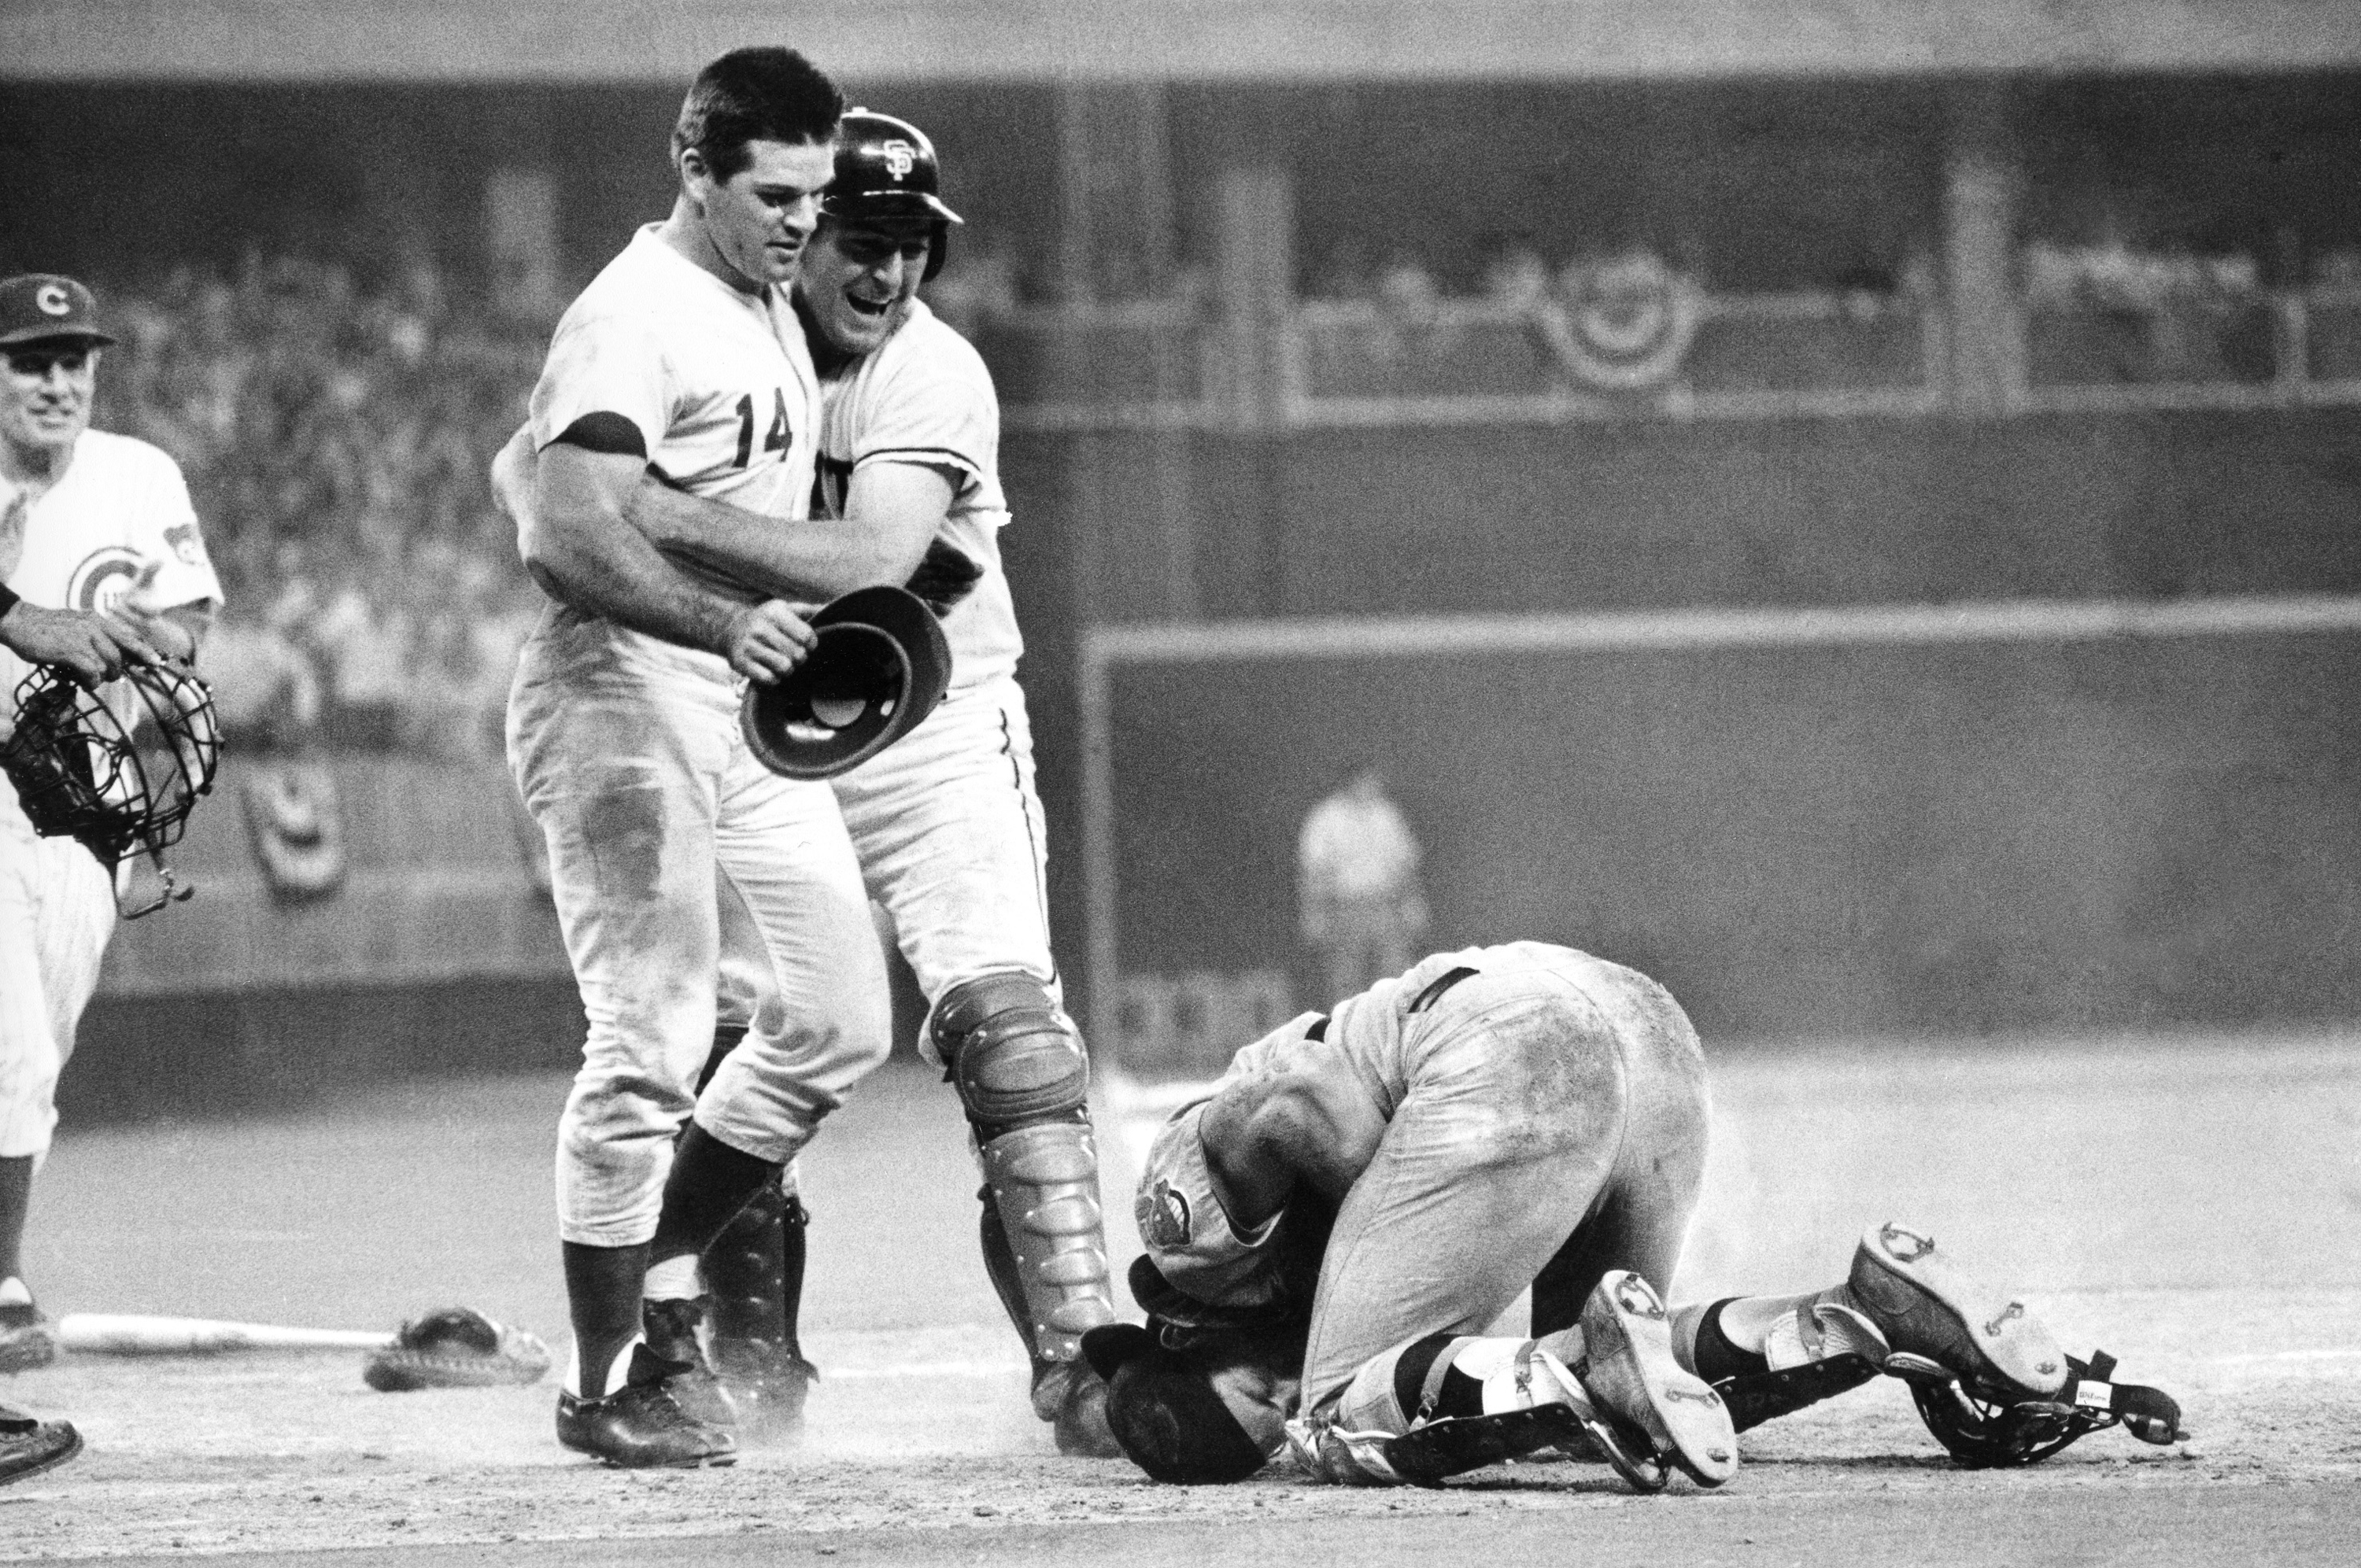 FILE - In this July 14, 1970, file photo, National League's Pete Rose, left, is hugged by his teammate Dick Dietz while American League's catcher Ray Fosse lies injured on the ground, after Rose crashed into him to score the game-winning run for the Natio